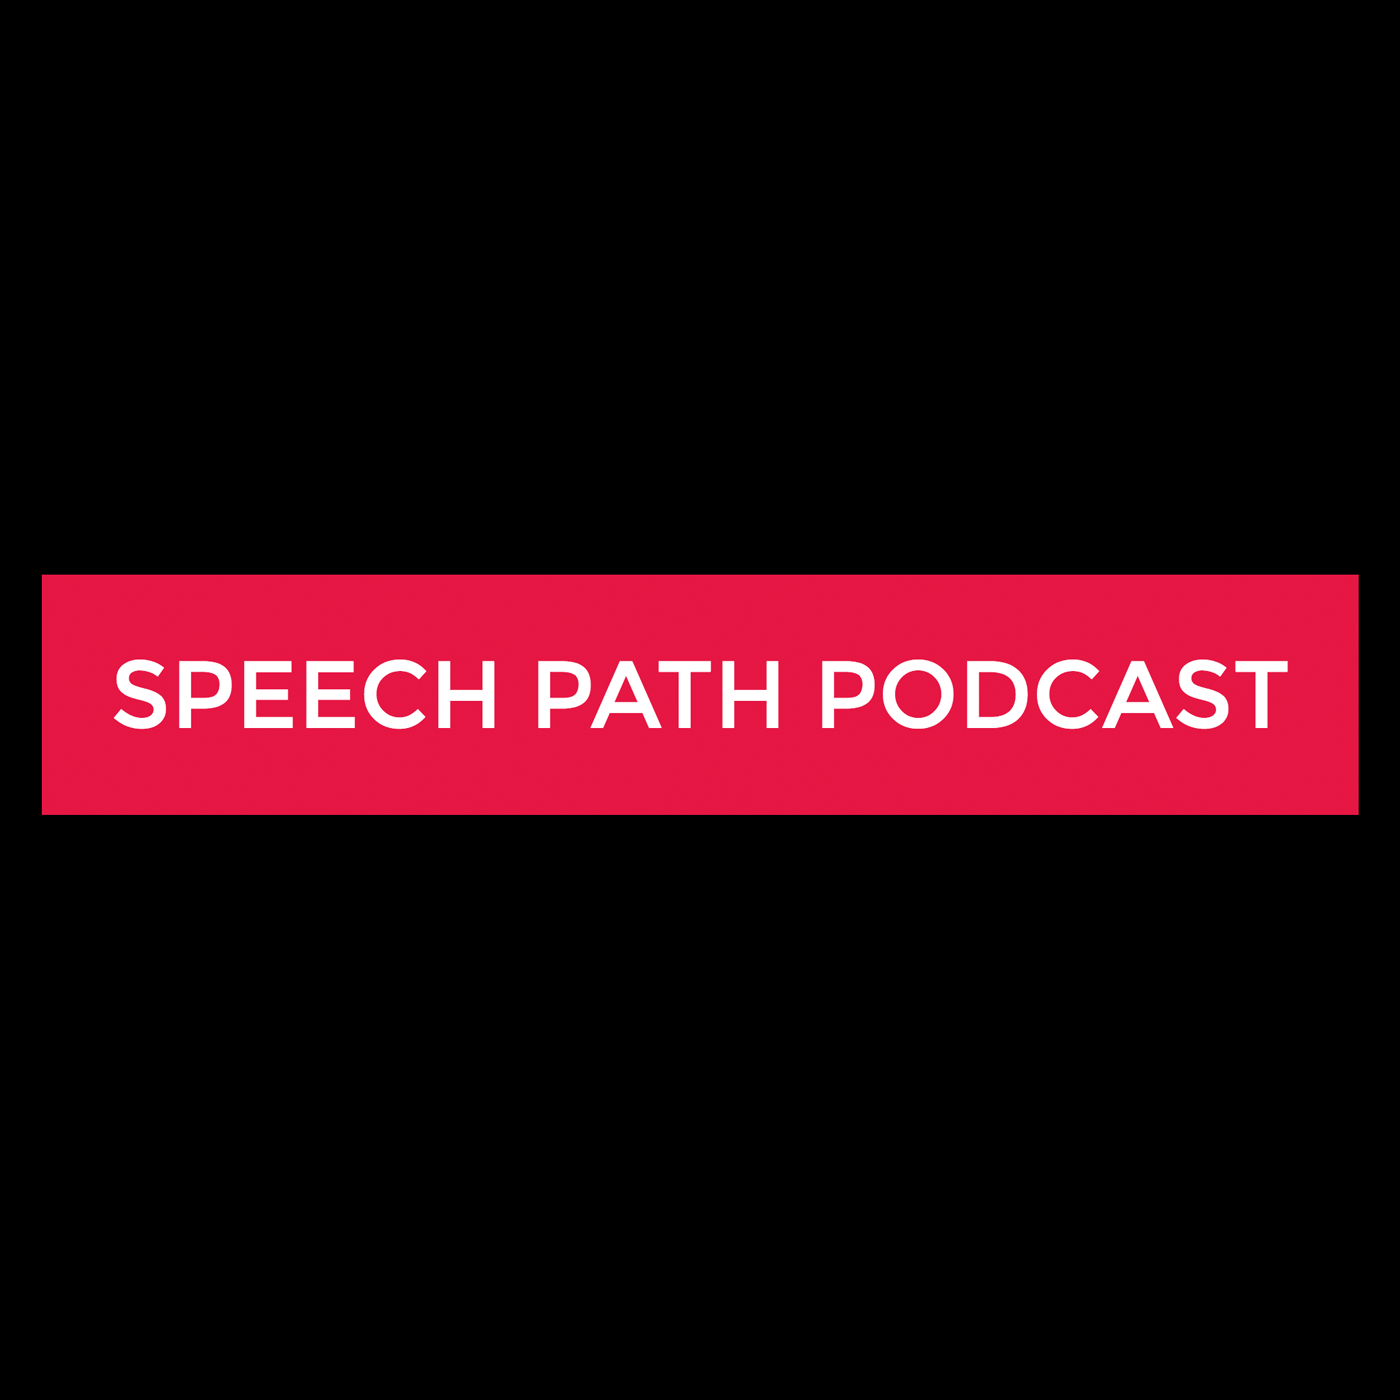 Speech Path Podcast